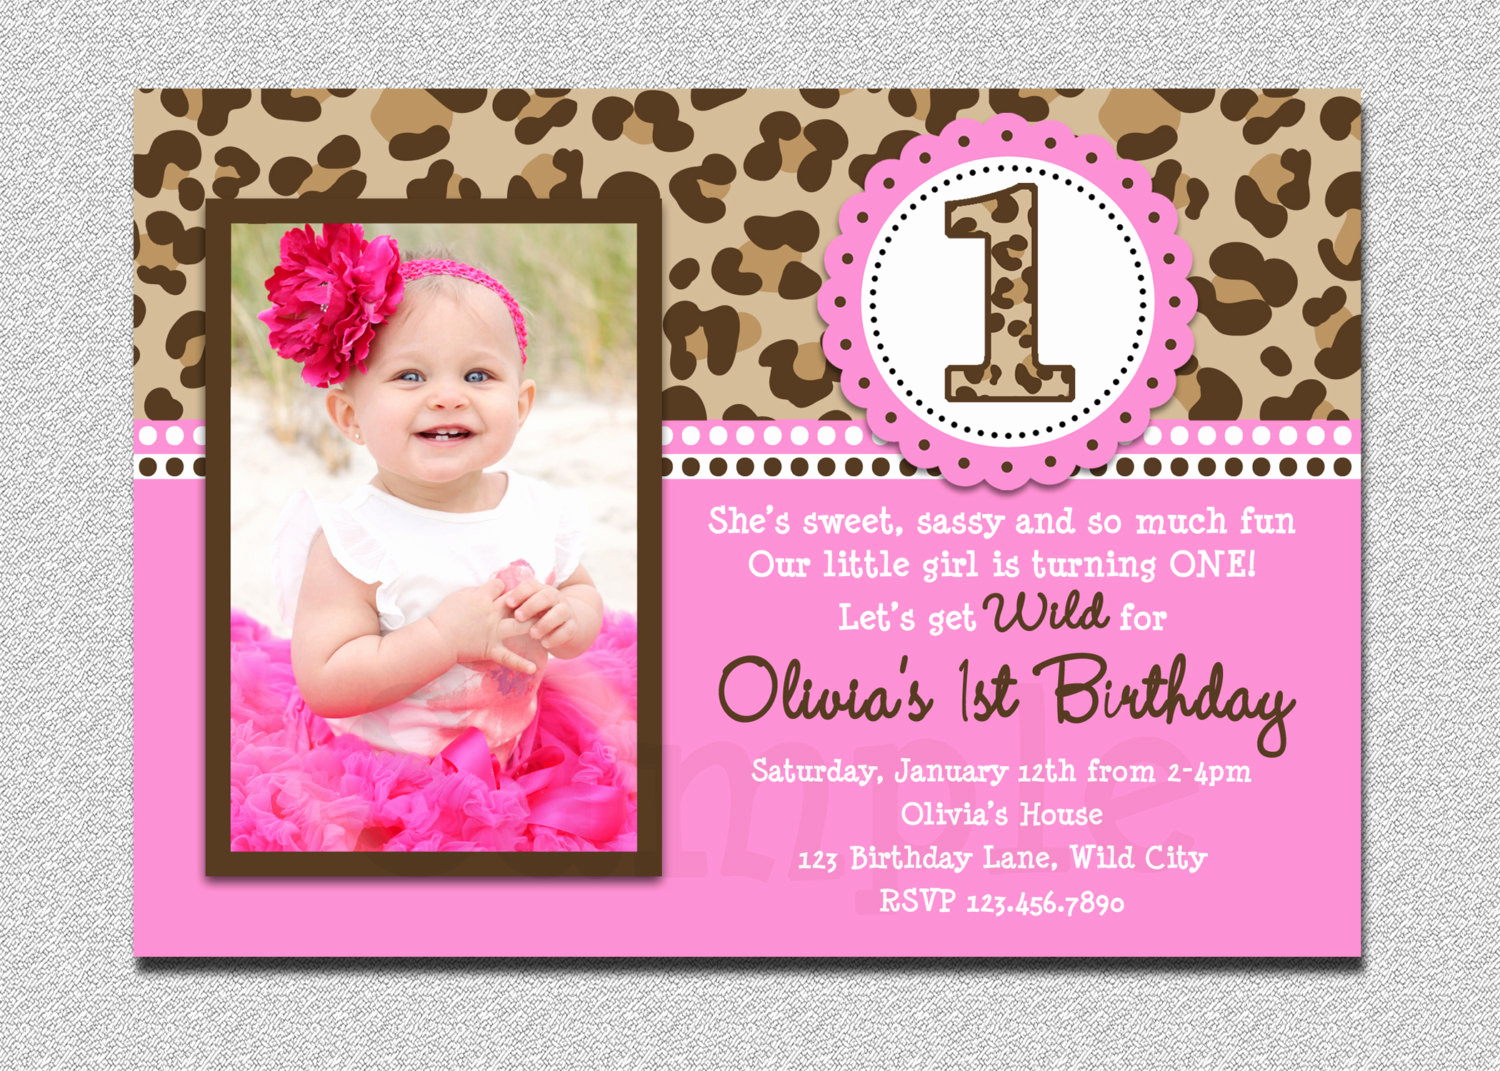 1st Birthday Invitation Template Lovely Free Printable 1st Birthday Invitations Girl – Free